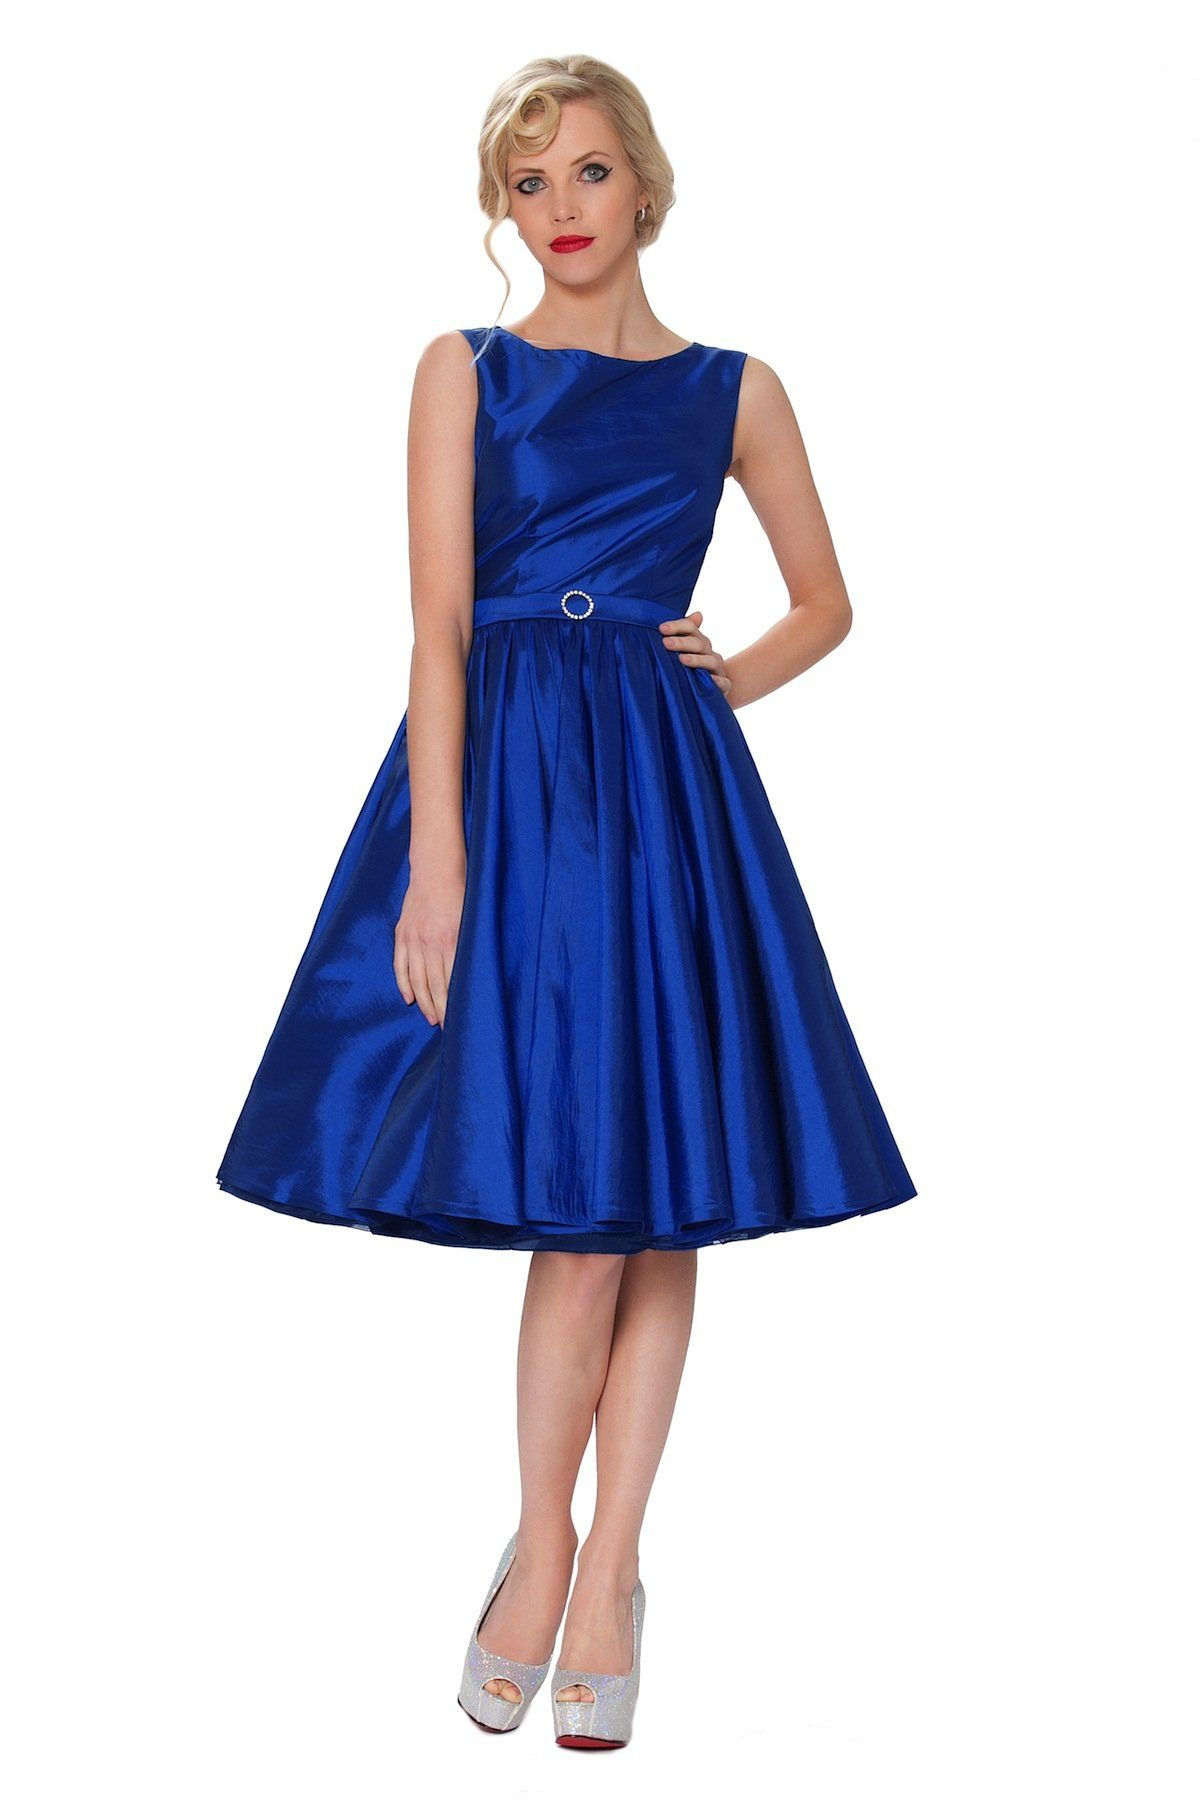 Blue and purple wedding dress  SEXYHER Clothing Classy Audrey Hepburn Style Vintage Classic us